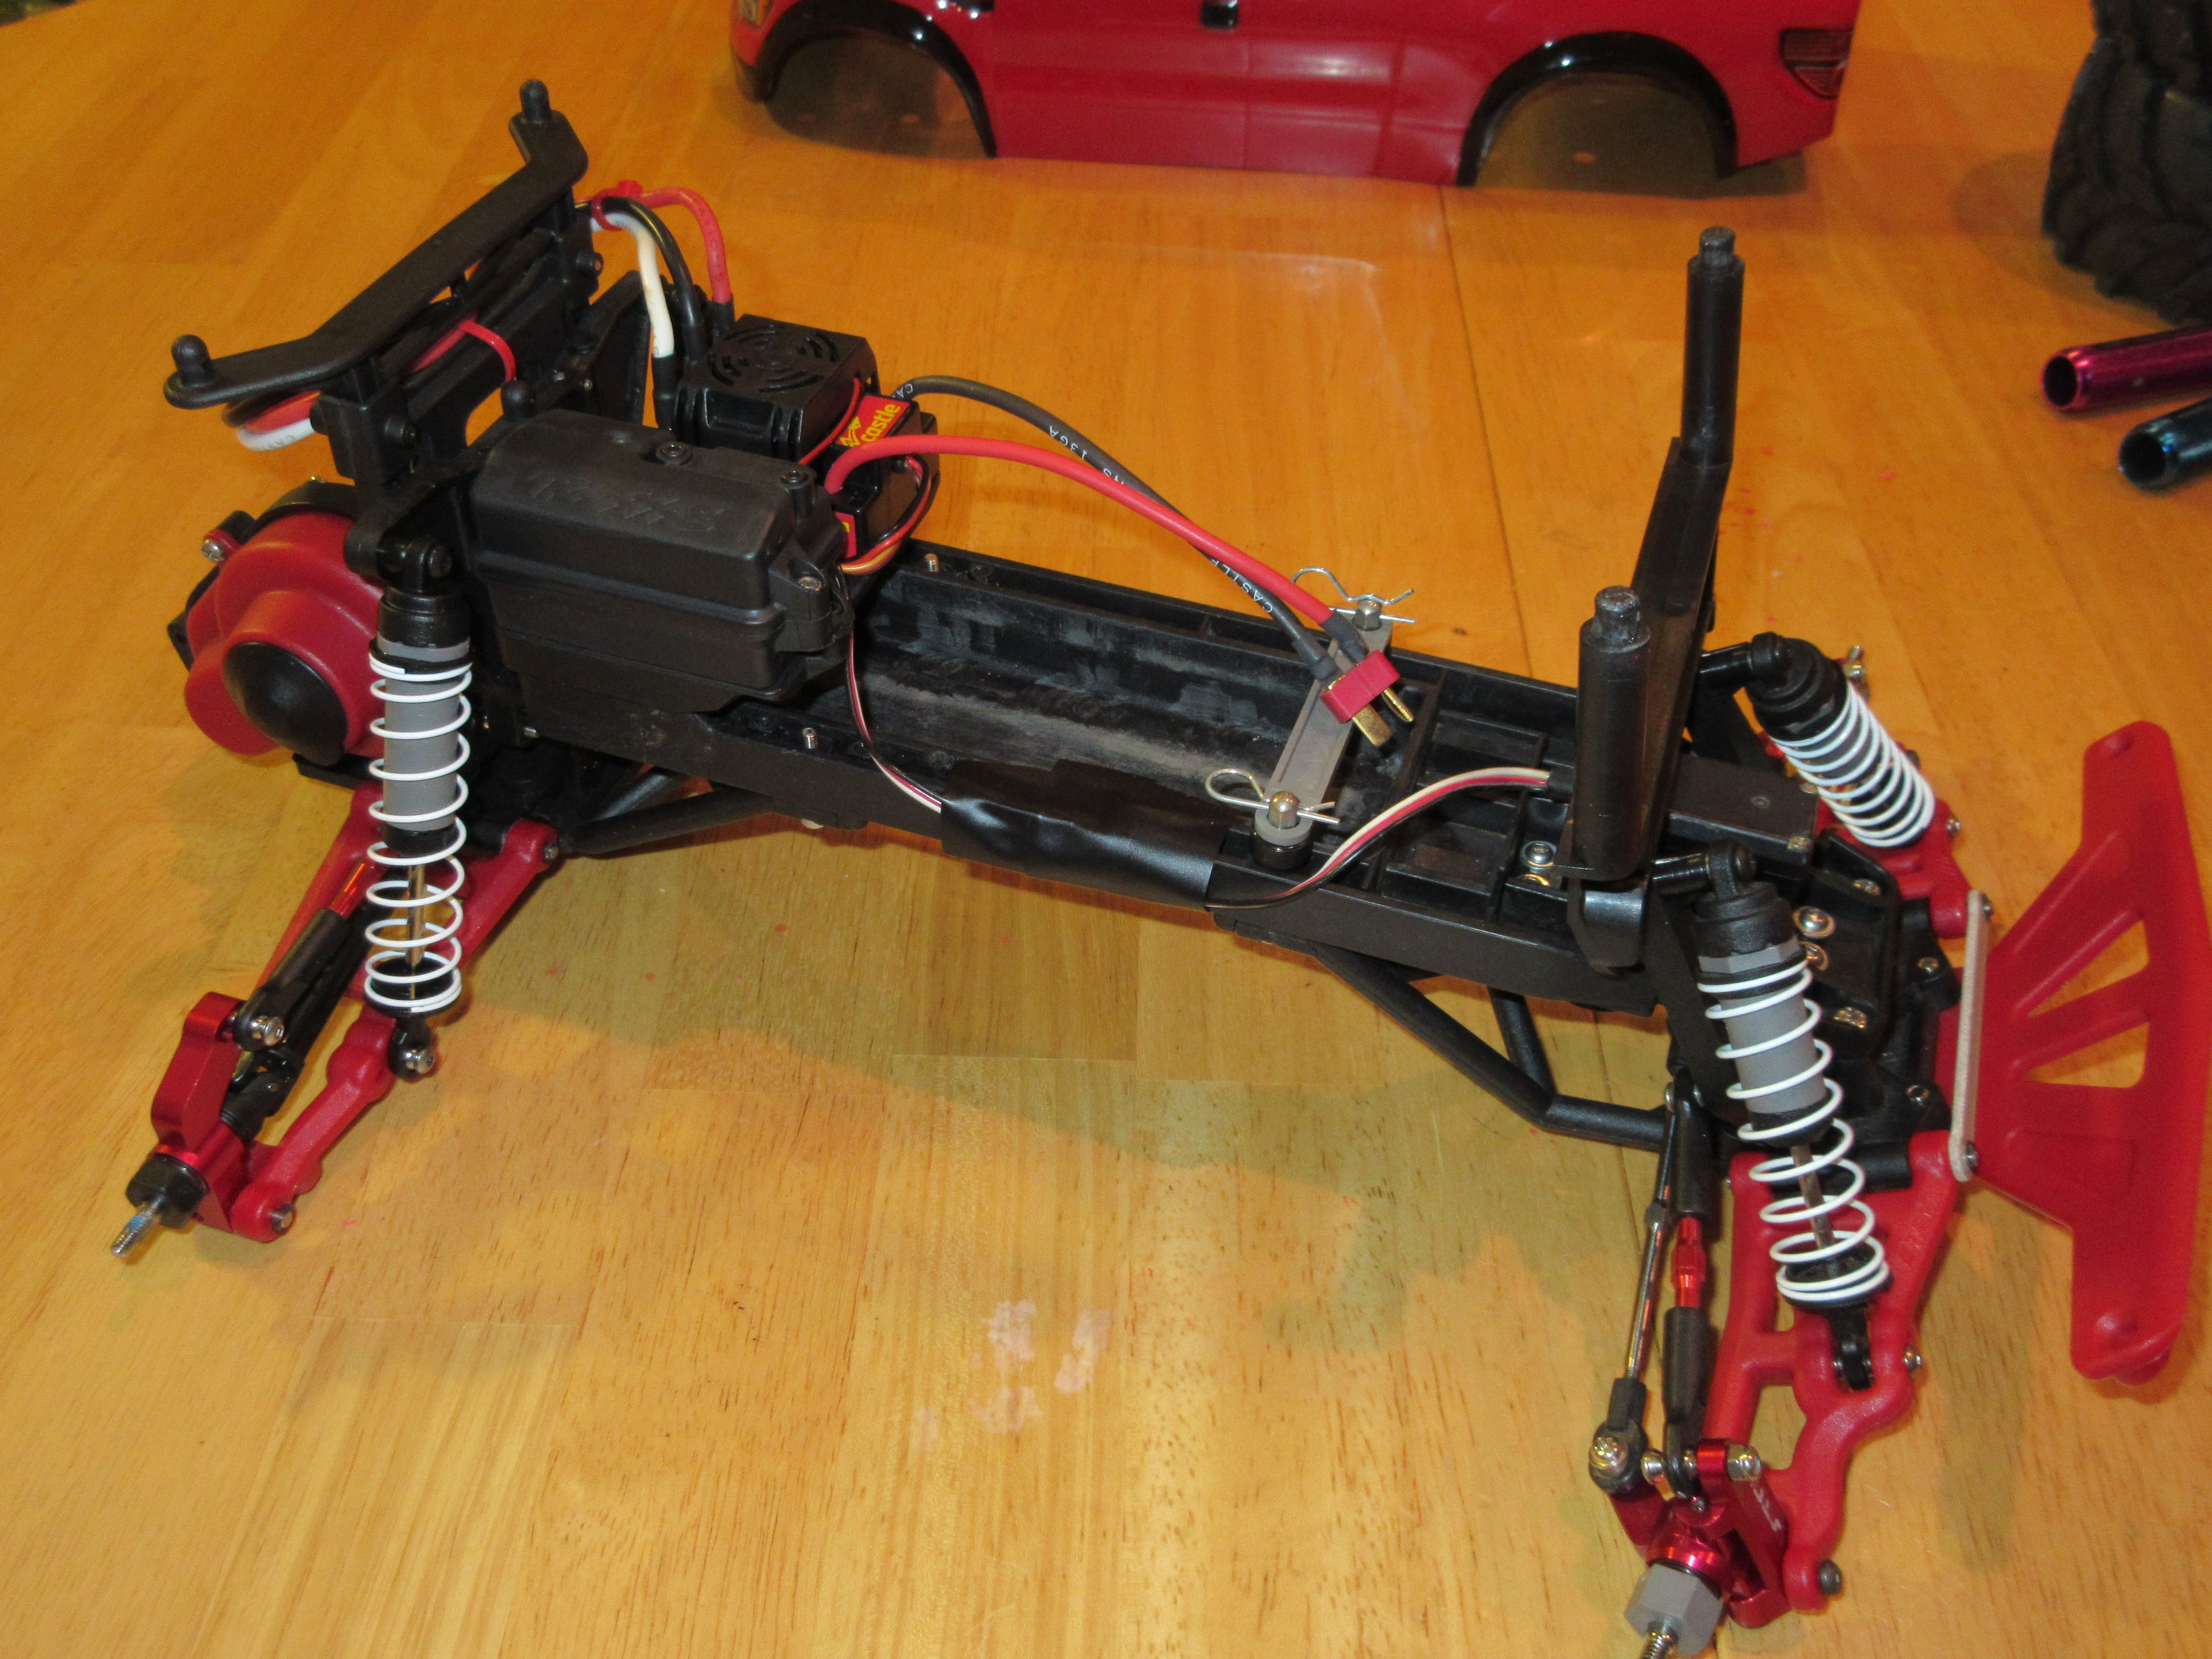 new RPM red parts RPM parts installed